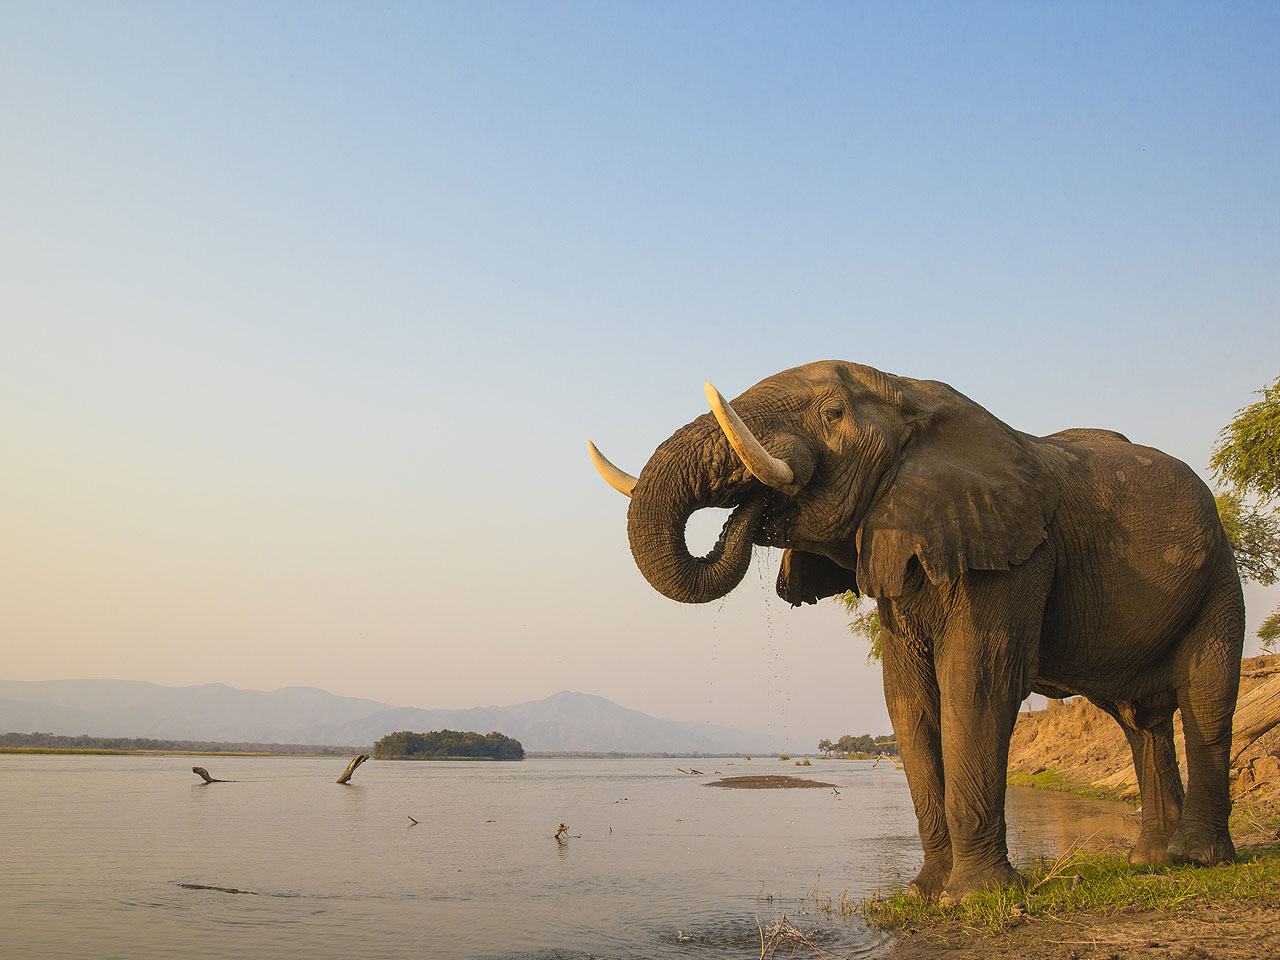 A close up of an elephant drinking water on the waters edge.